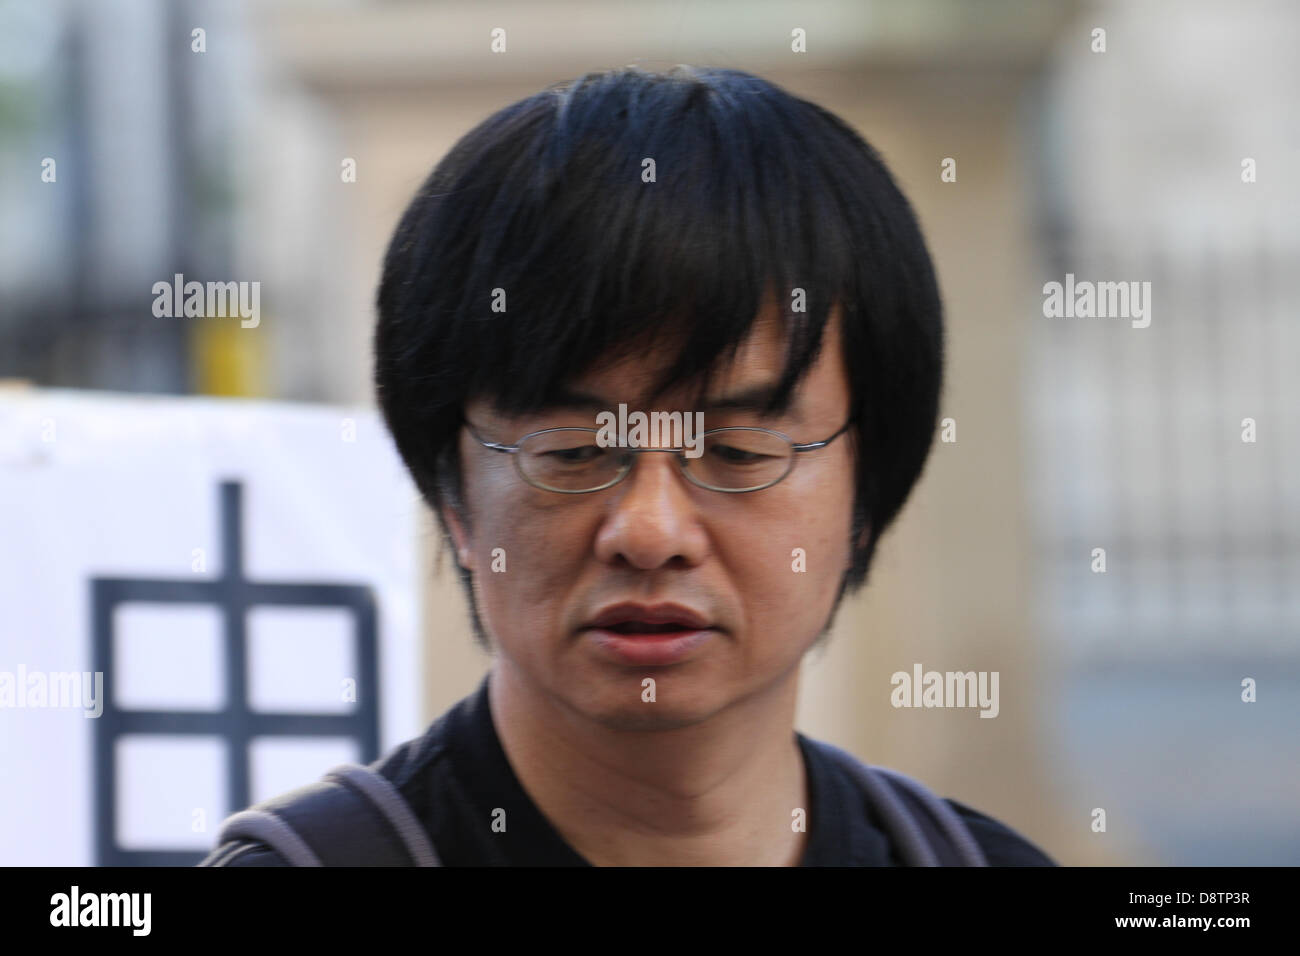 <b>Shao Jiang</b> who was a student witness of the massacre in - london-4-june-2013-shao-jiang-who-was-a-student-witness-of-the-massacre-D8TP3R